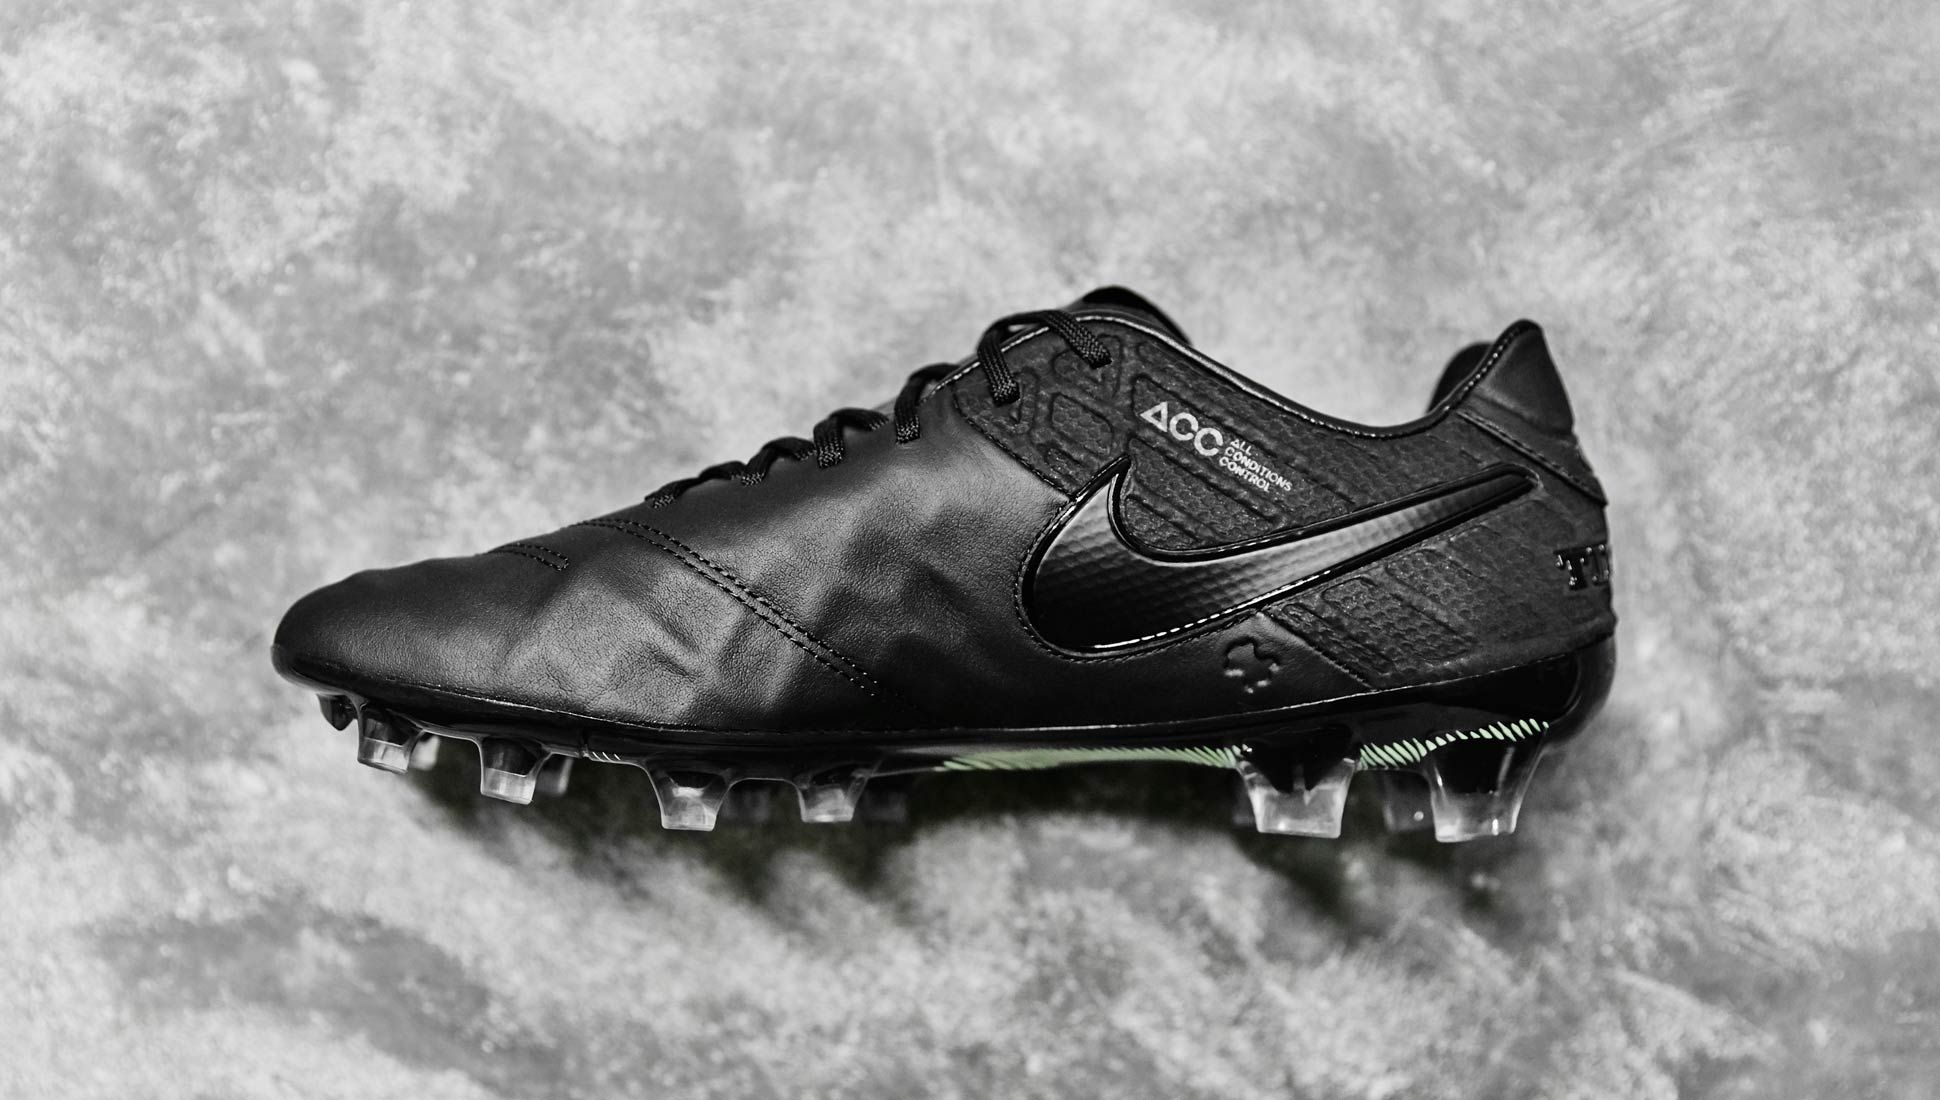 Nike Tiempo 6 Black Black Volt Soccerbible Football Boots Nike Soccer Boots